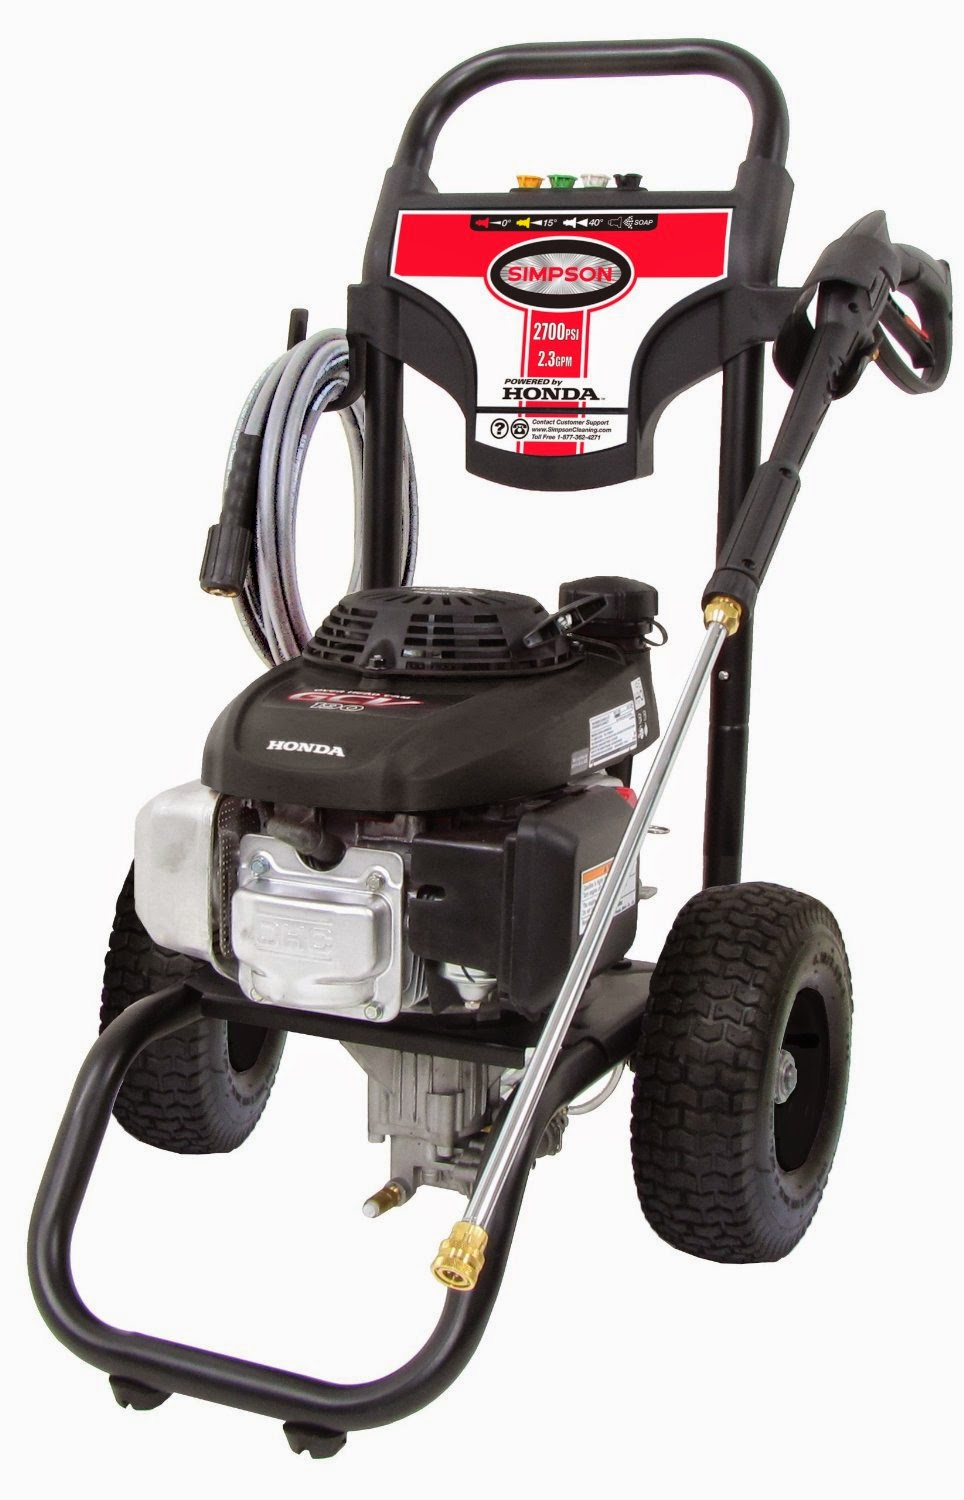 Shop our selection of - , or Greater, Pressure Washers in the Outdoors Department at The Home Depot.